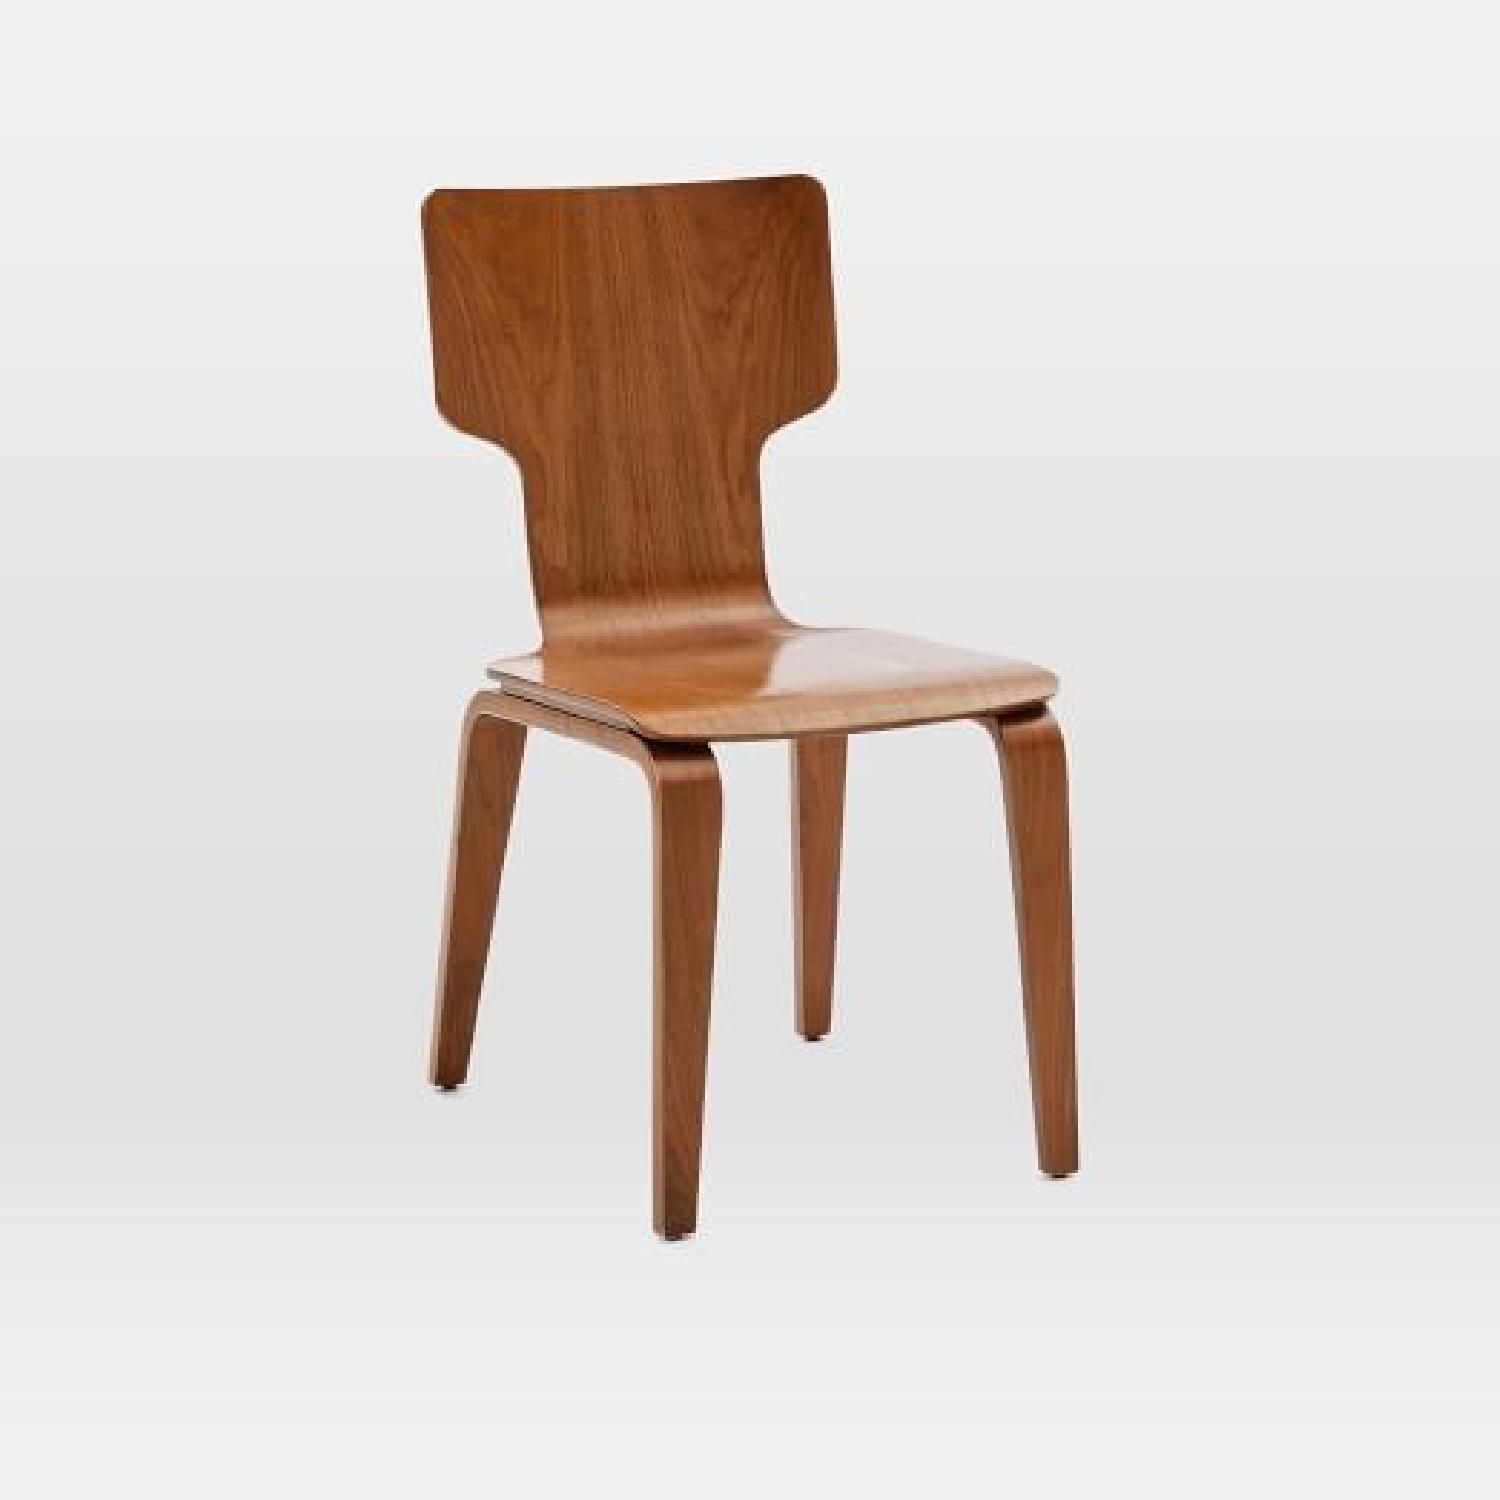 West Elm Stackable Dining Chair in Walnut - image-4